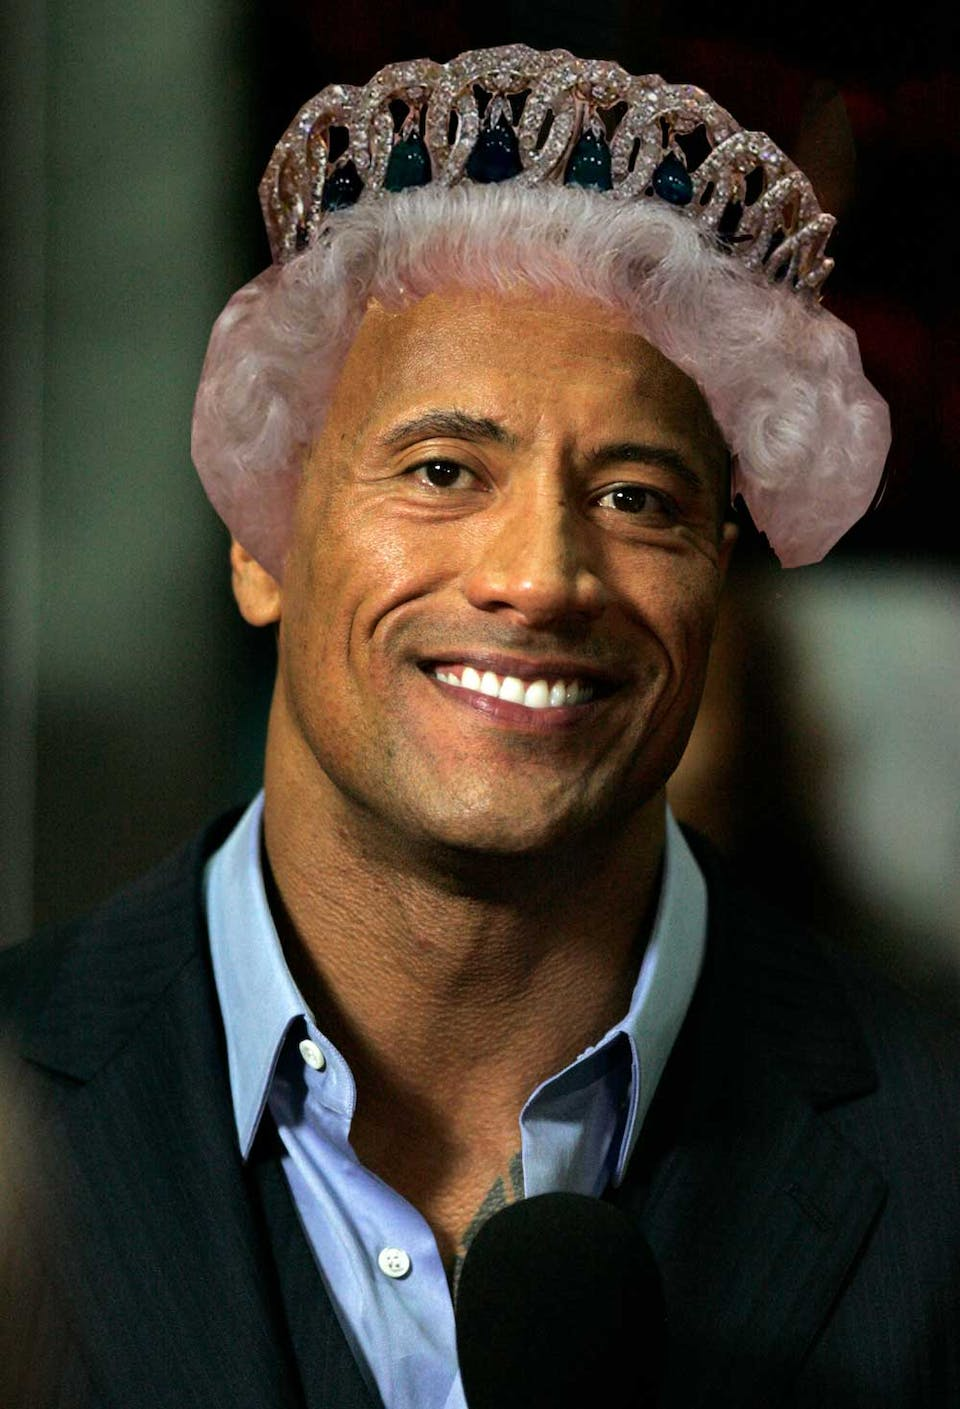 The Rock with the Queen's hair